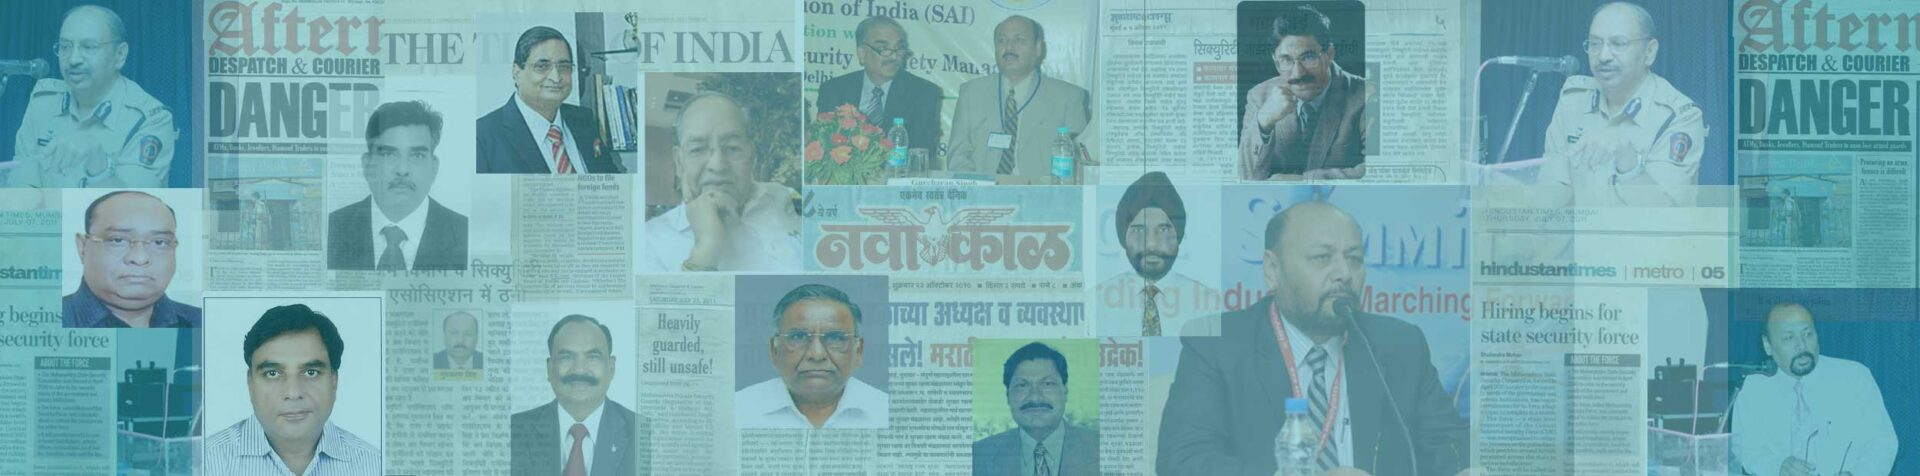 Security Association of India